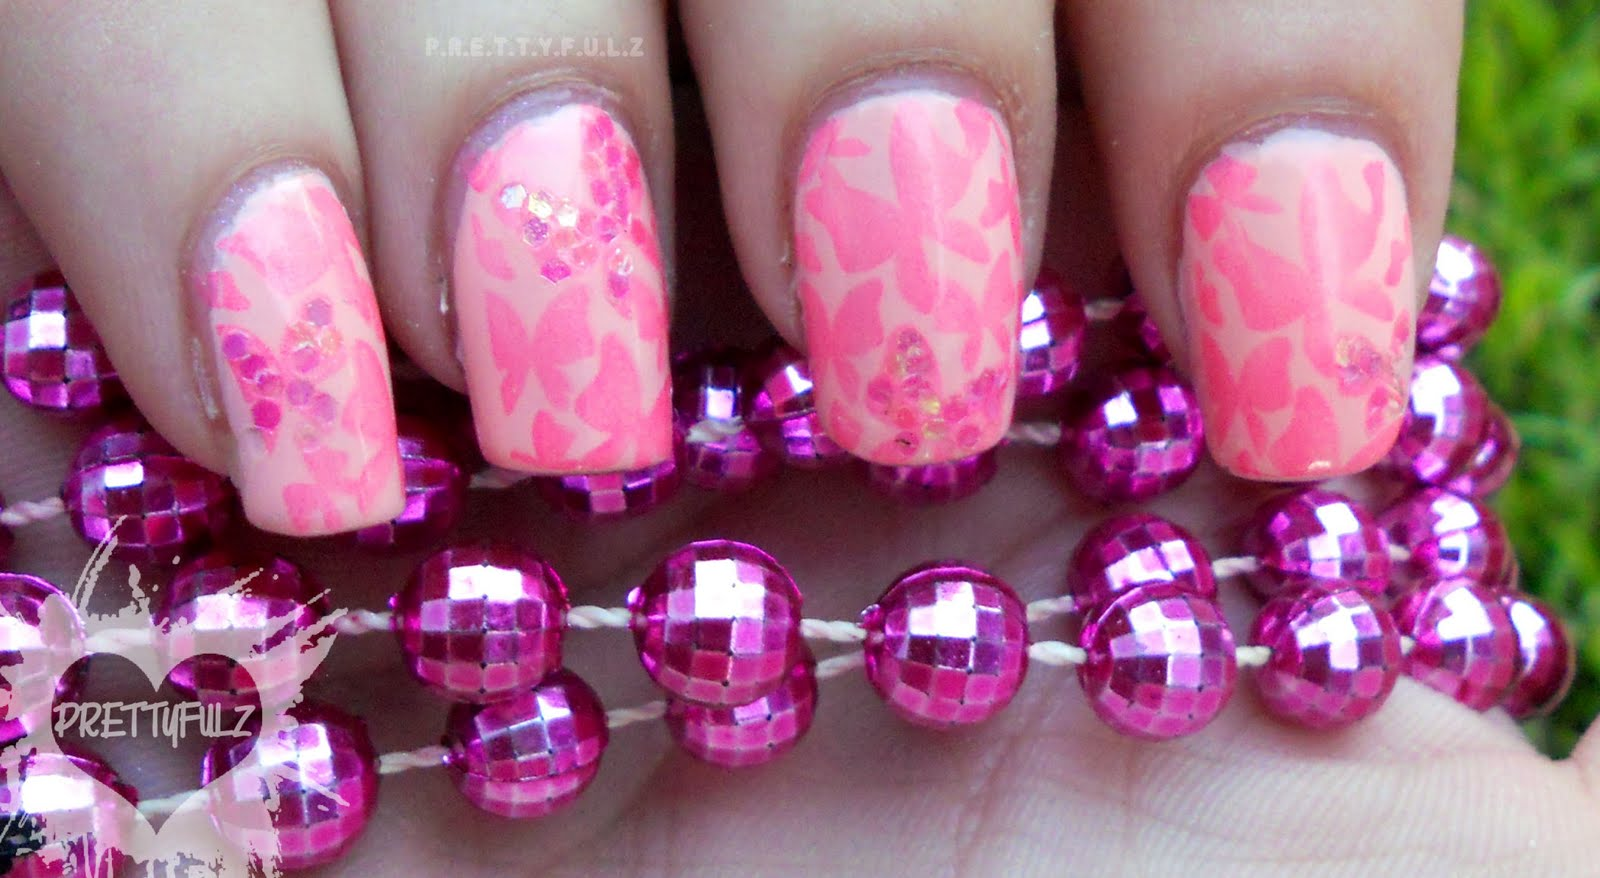 Cute nail art names : Nail designs with names on them cute new art